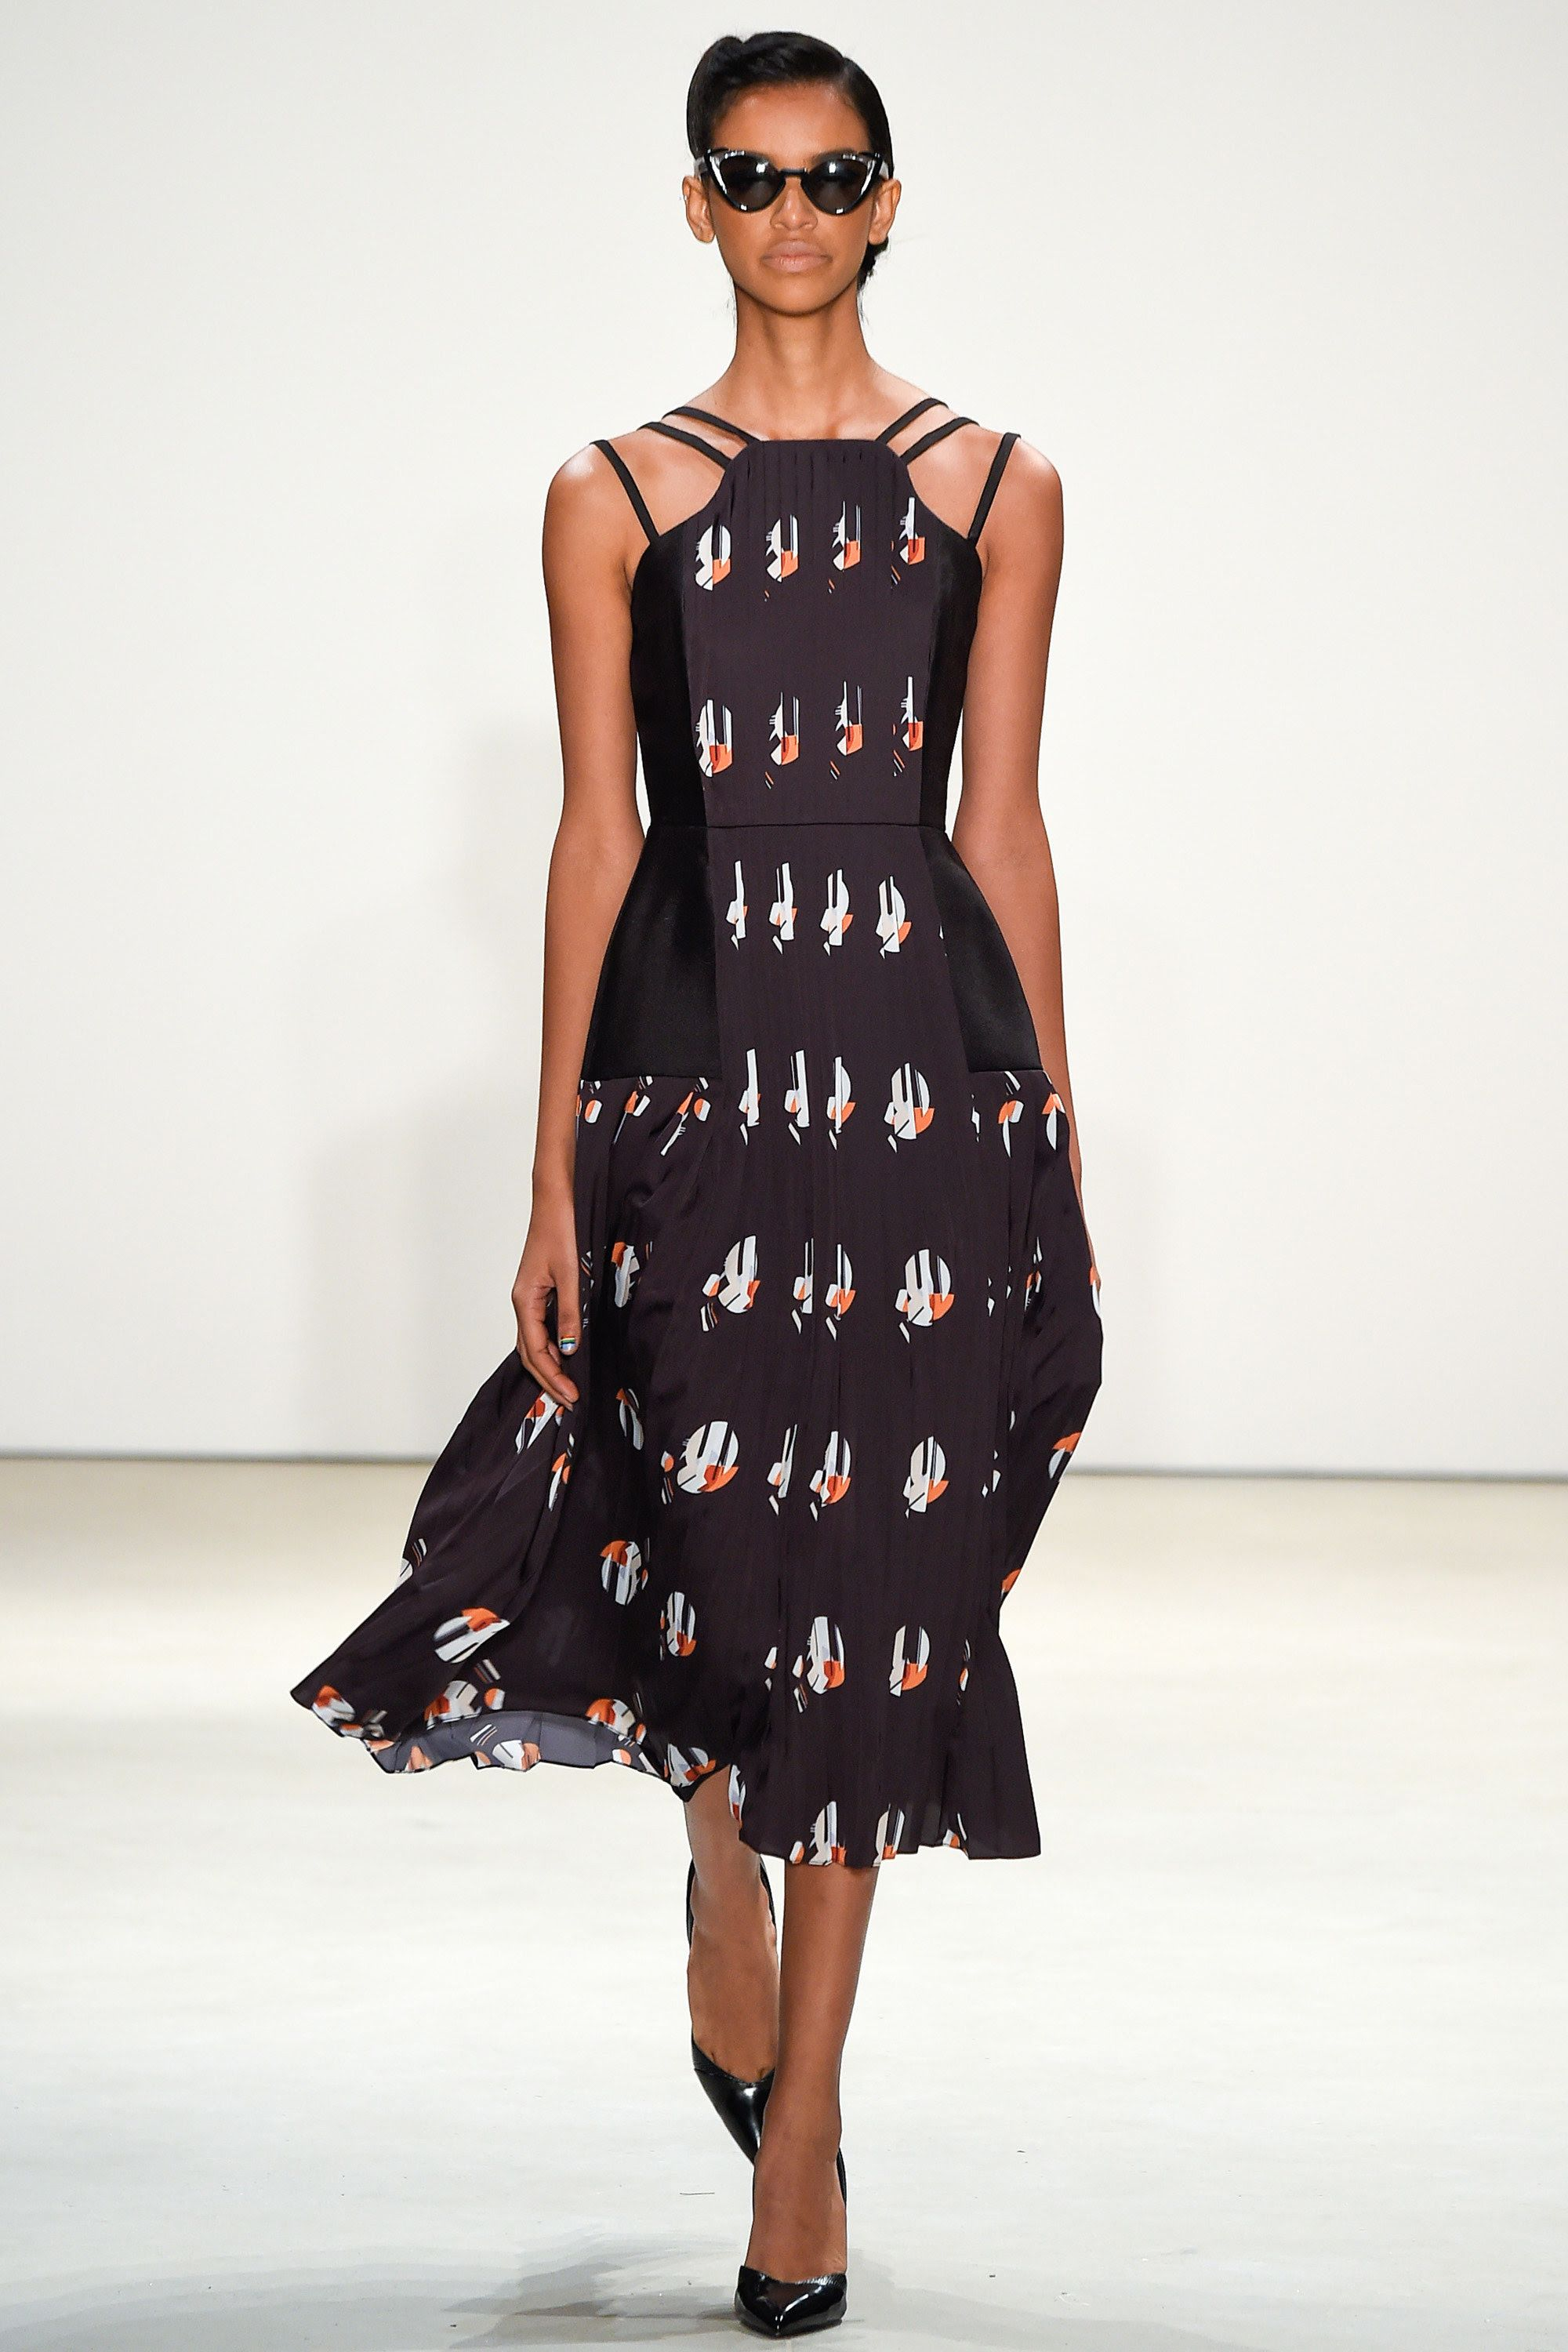 Bibhu Mohapatra S/S 2016 RTW - Weekend Out Dress